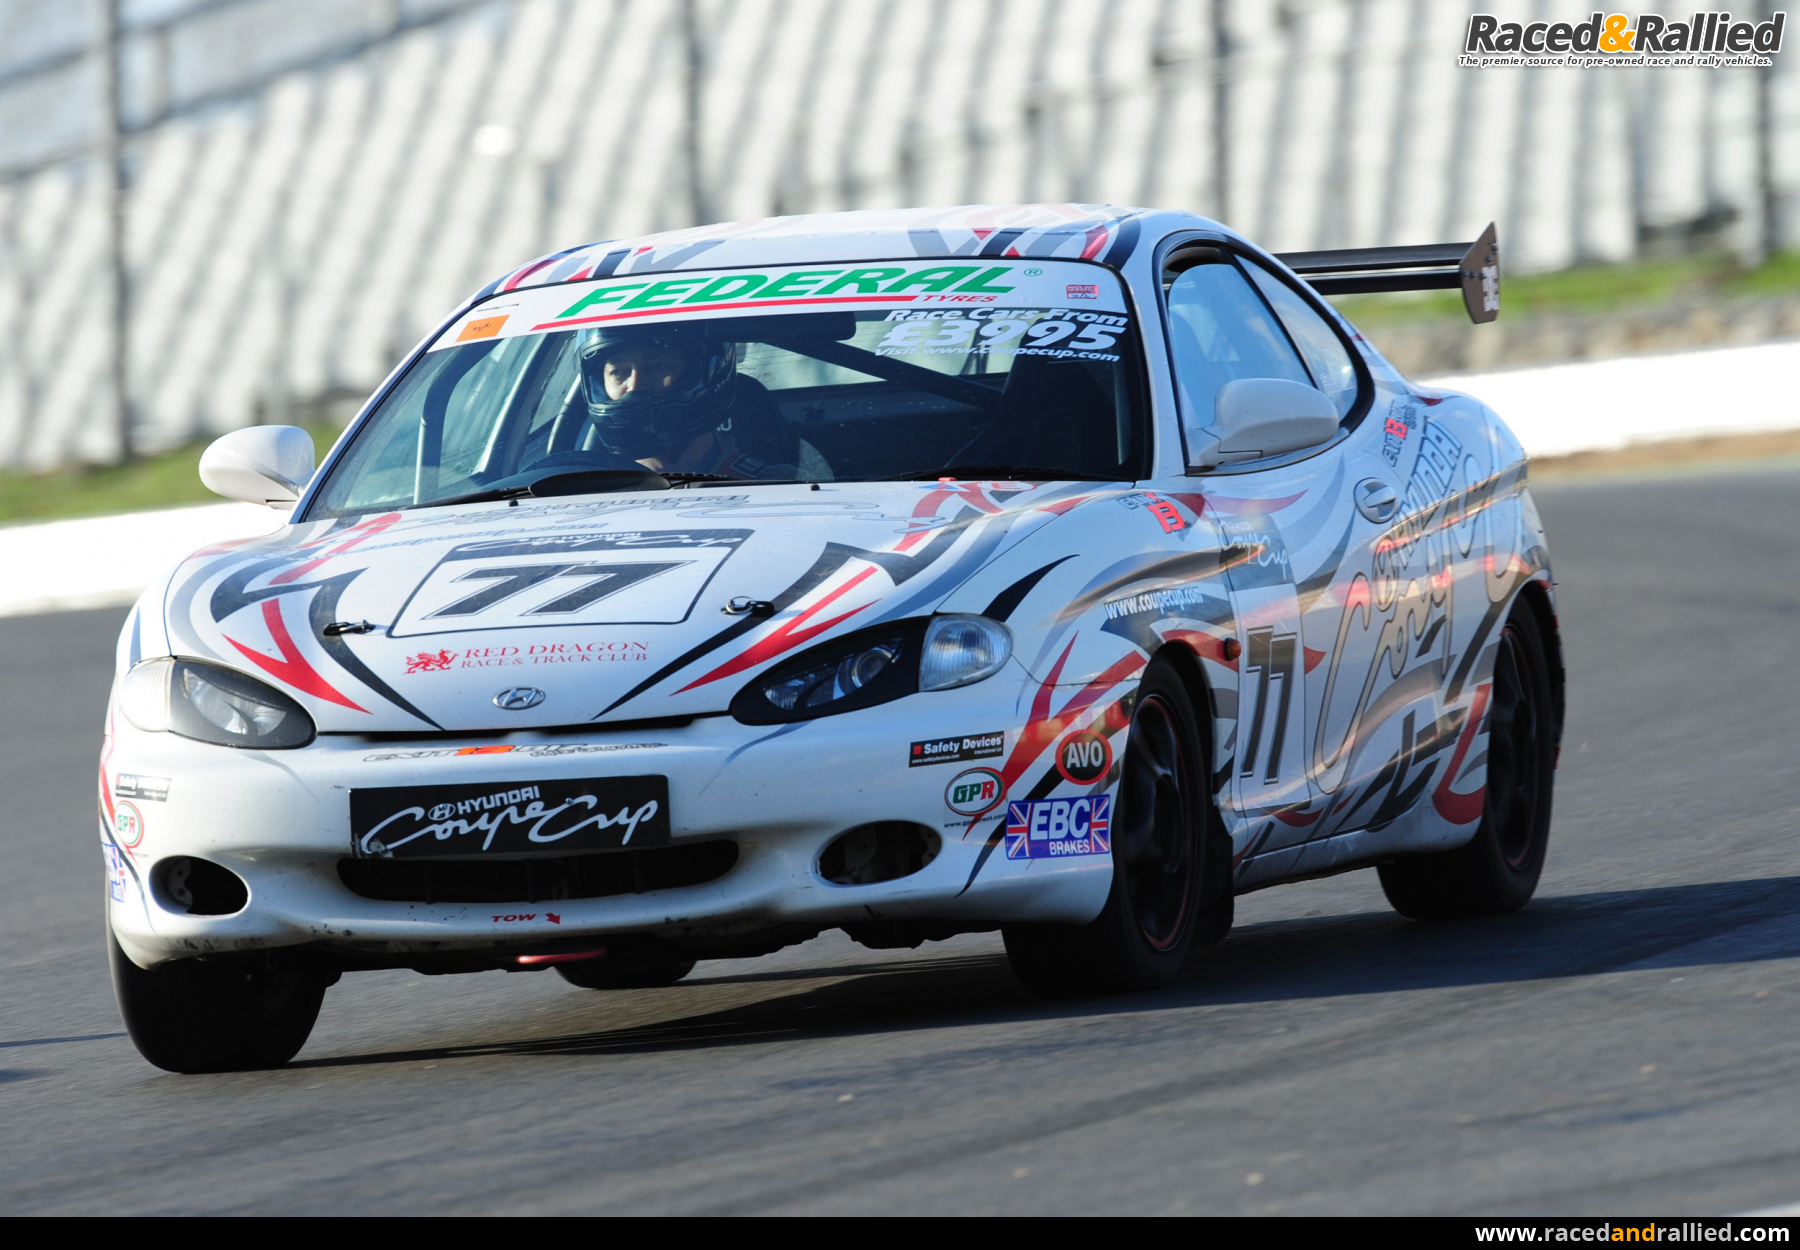 Hyundai Coupe Cup Race Cars   Race Cars for sale at Raced & Rallied ...